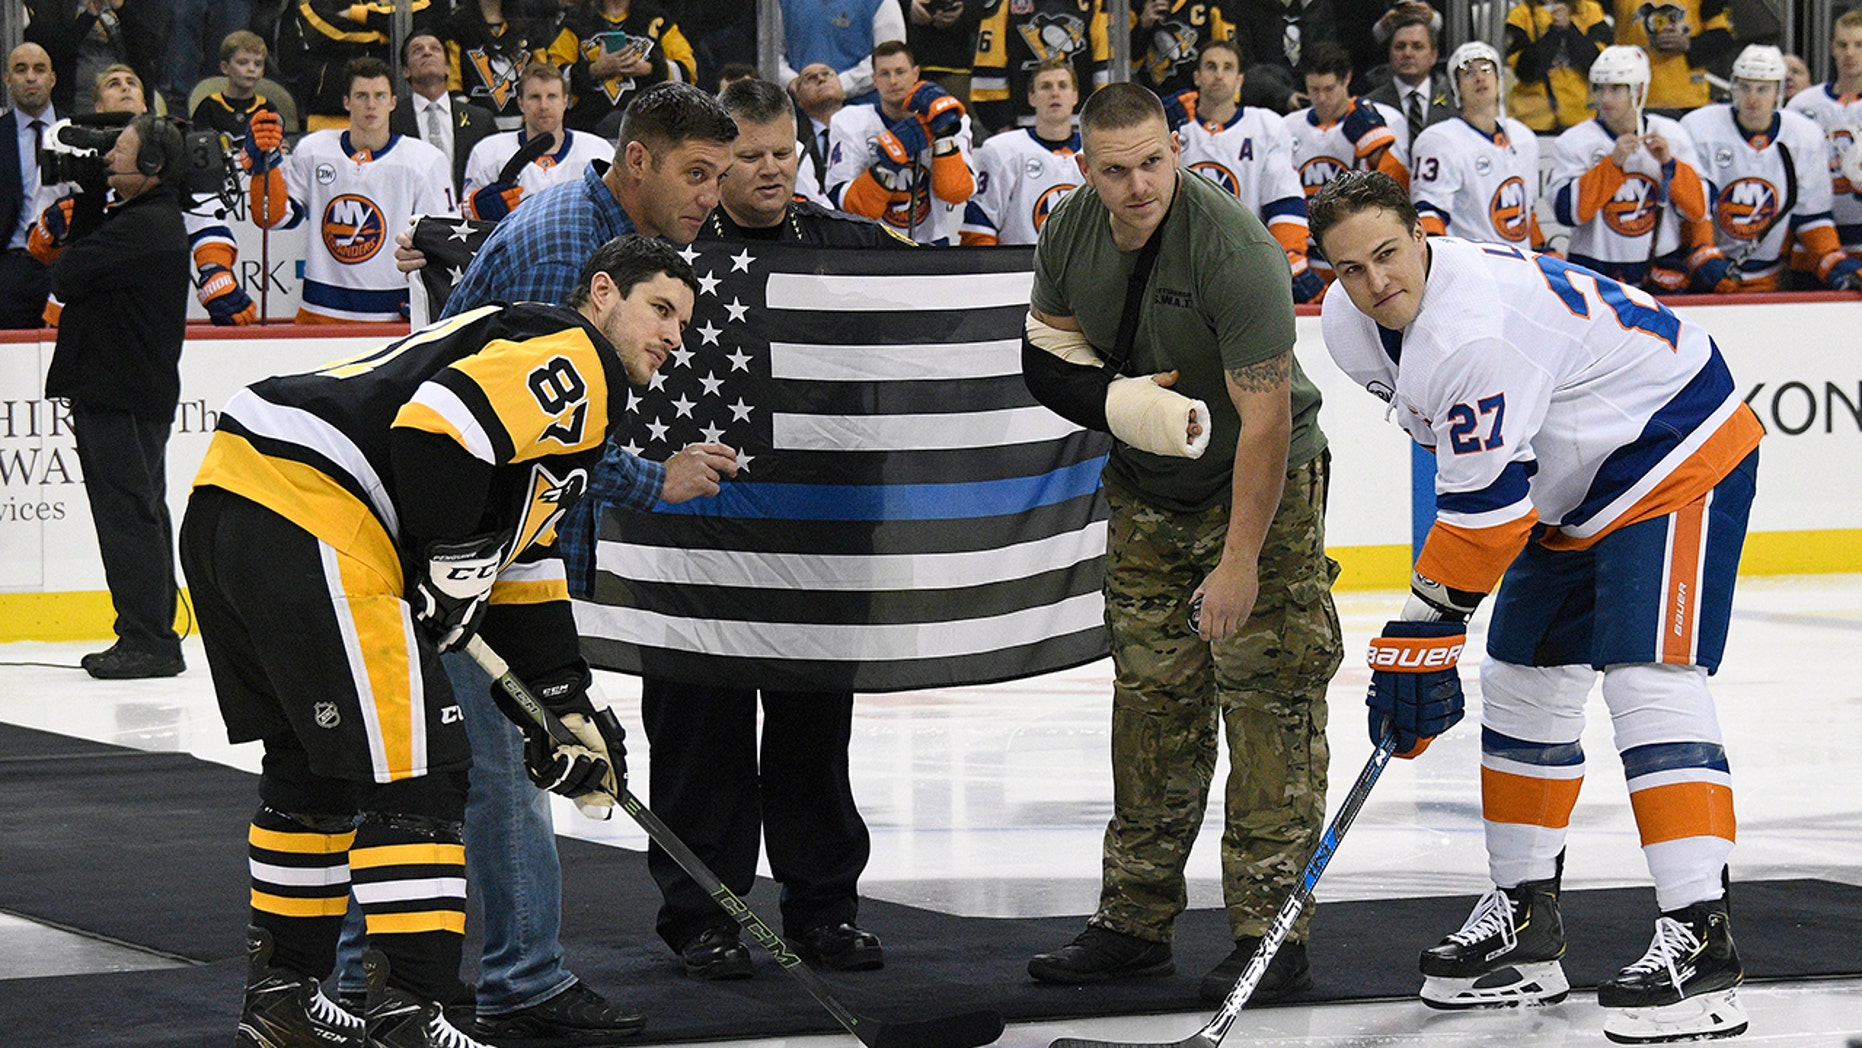 Pittsburgh Police Officer Mike Smidga, Pittsburgh Police Chief Scott Schubert and Officer Anthony Burke take part in a ceremonial puck drop with Pittsburgh Penguins center Sidney Crosby (87) and New York Islanders left wing Anders Lee (27) before an NHL hockey game in Pittsburgh, Tuesday, Oct. 30, 2018.